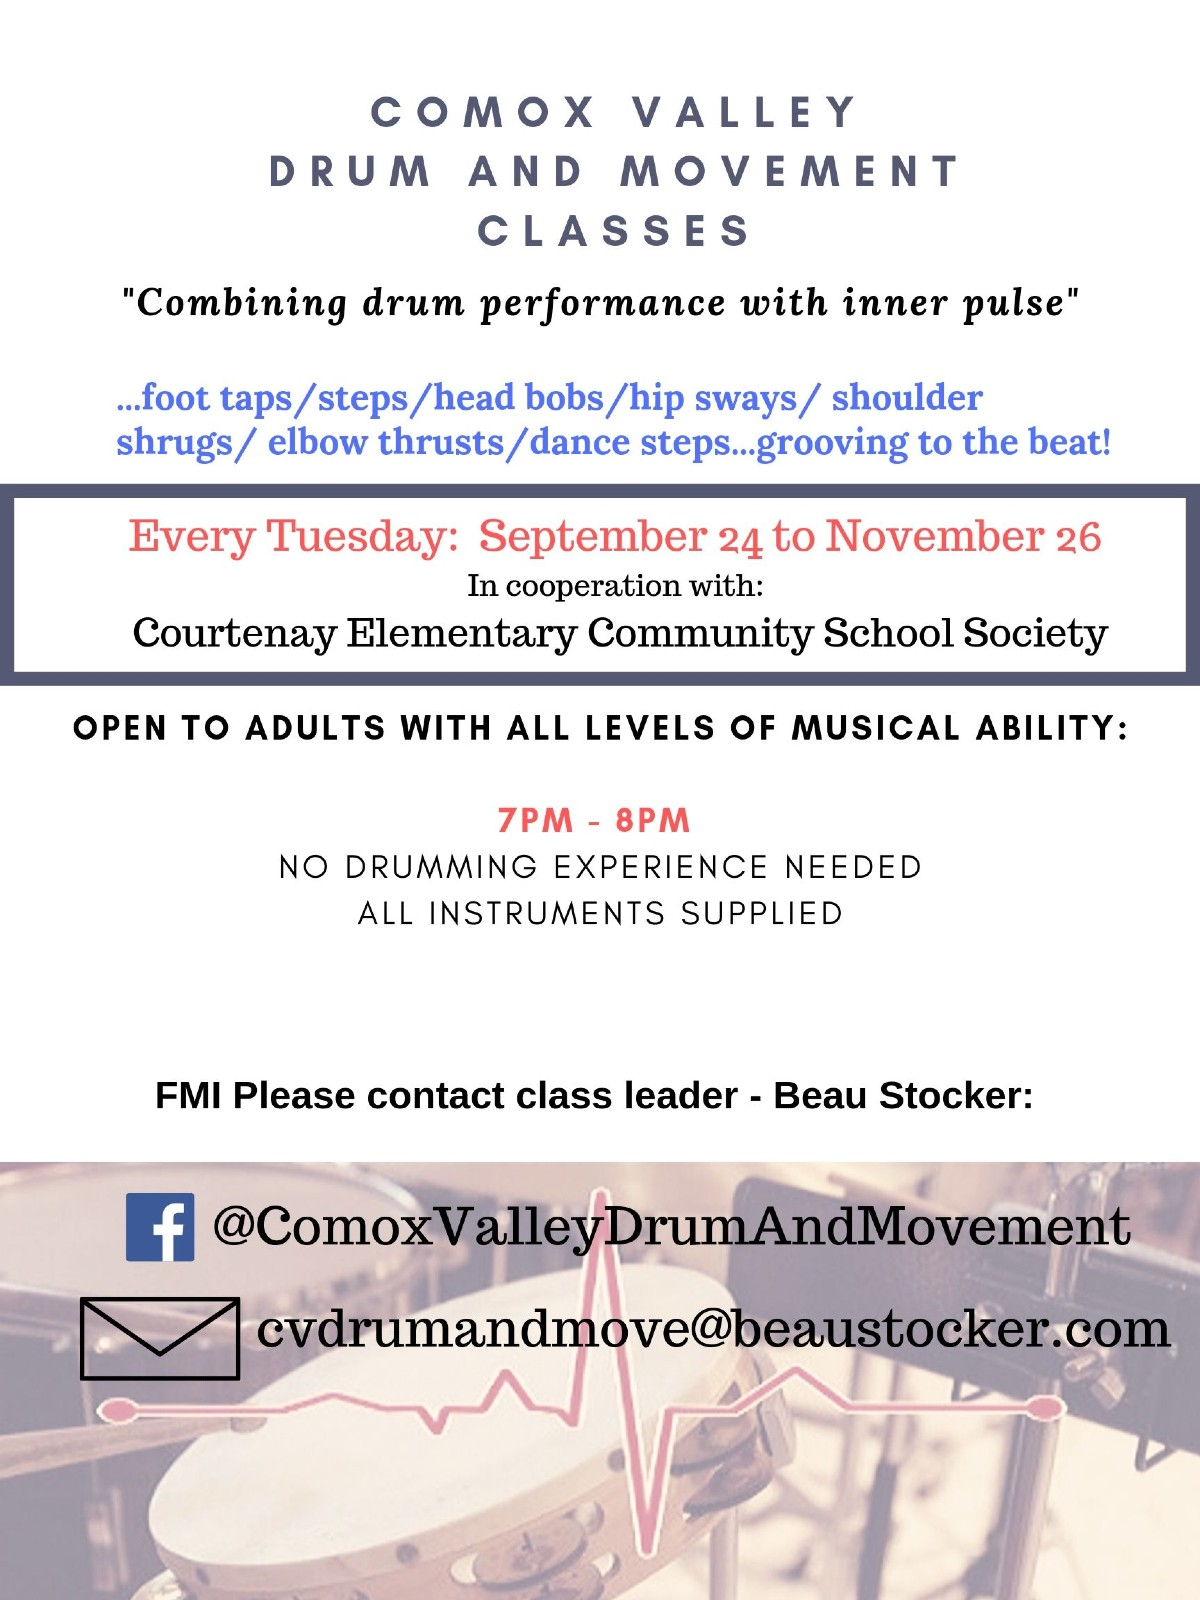 Drum and Movement Classes - Courtenay